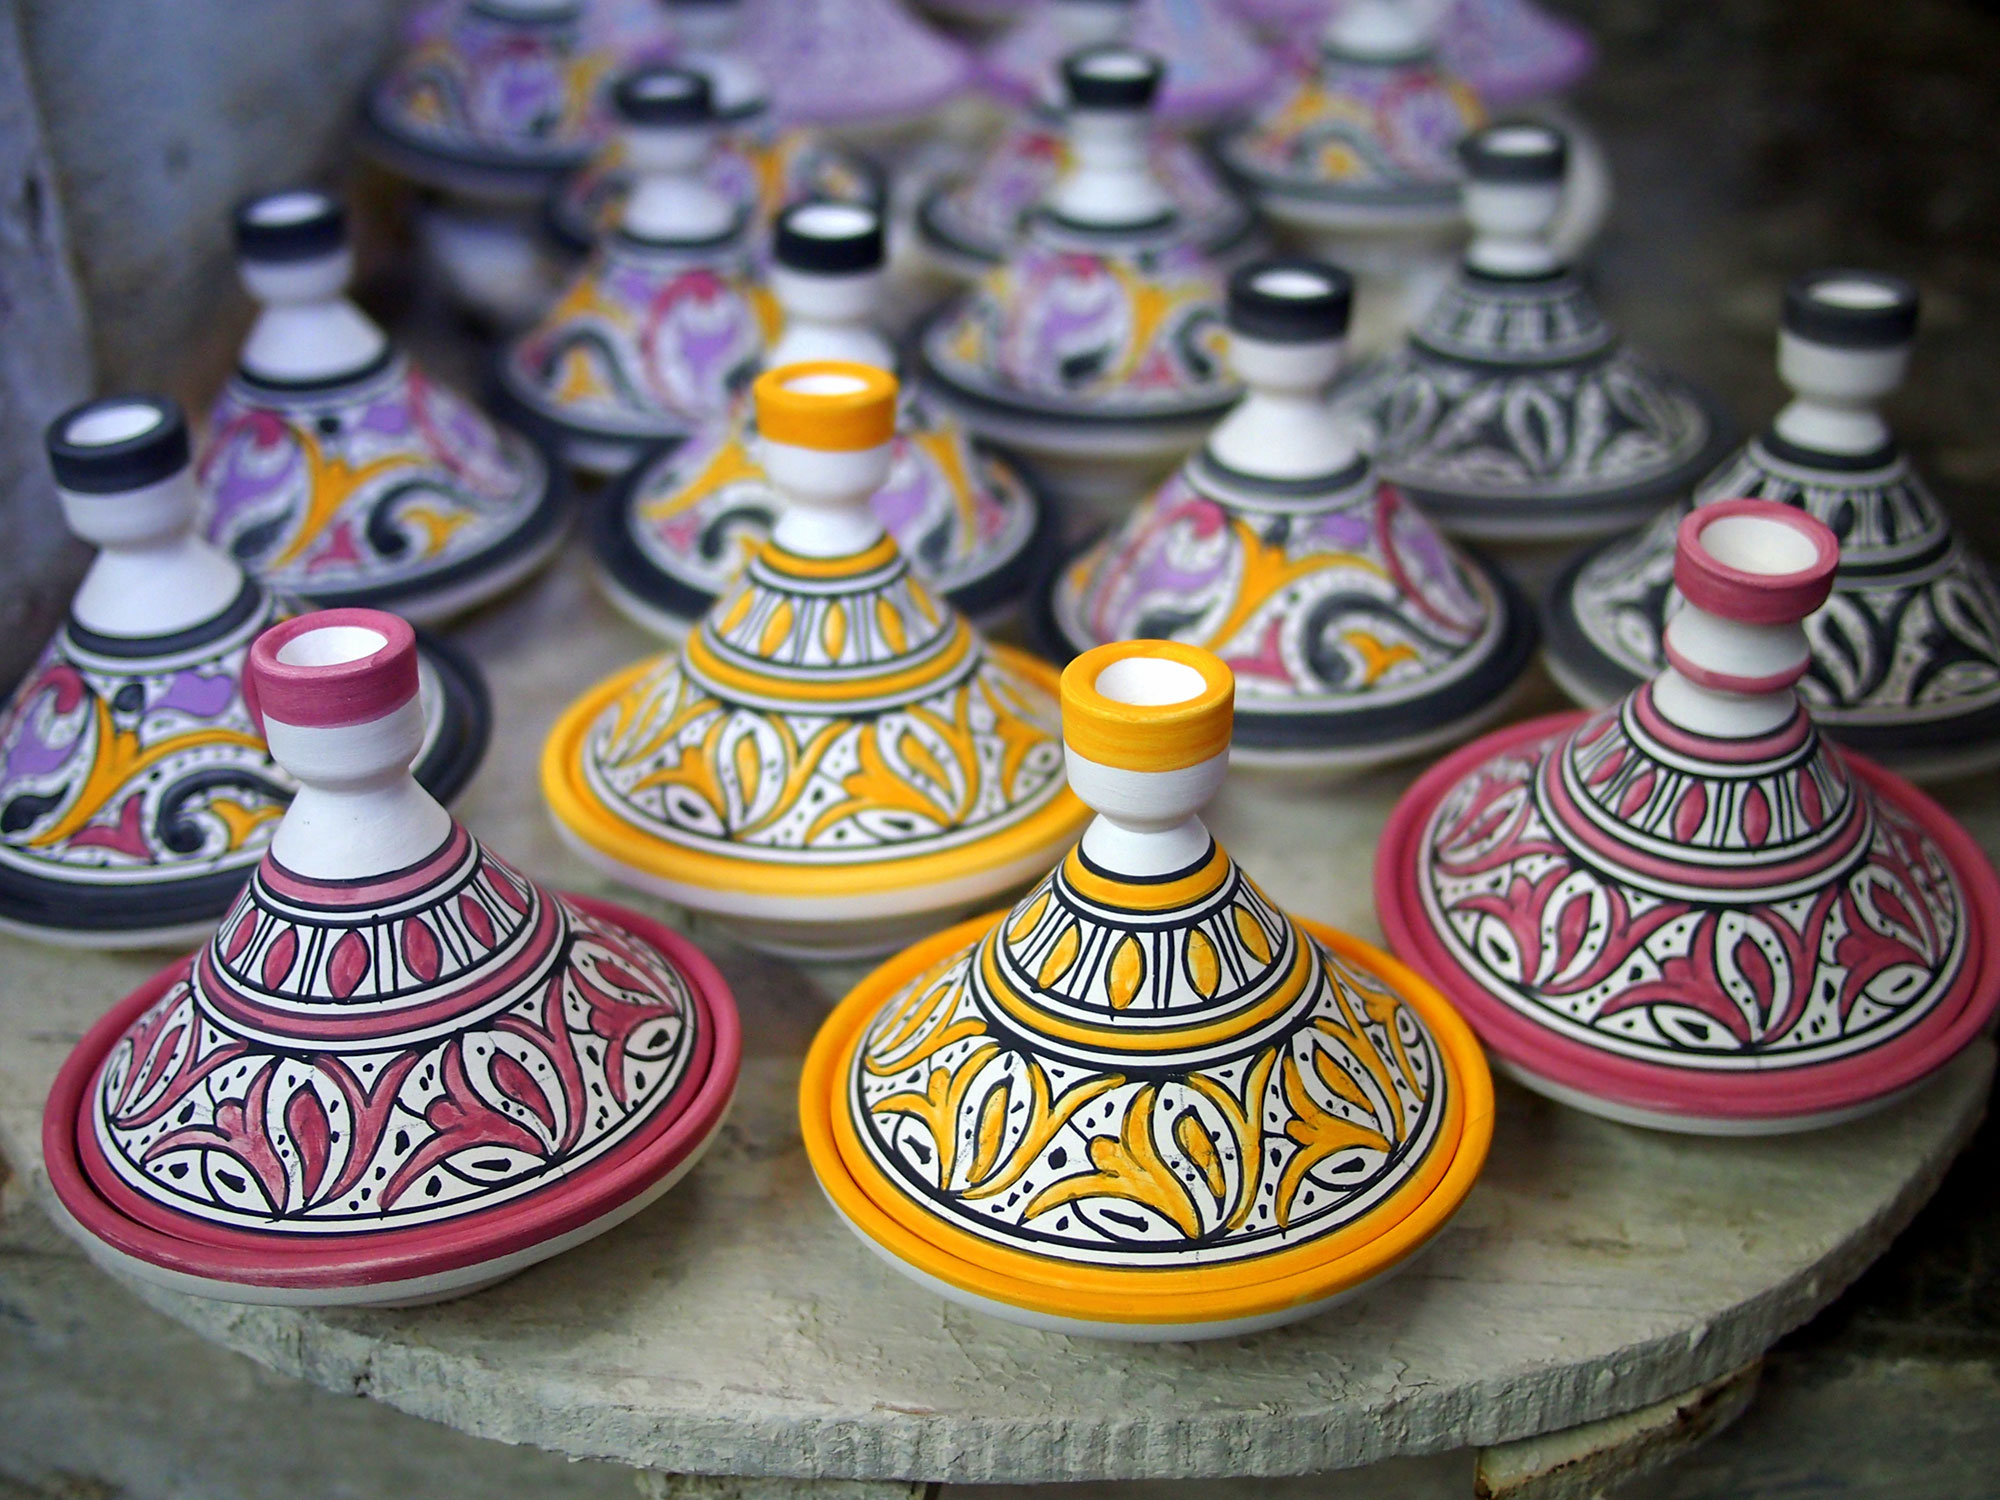 Decorative tagines from Fez, Morocco.